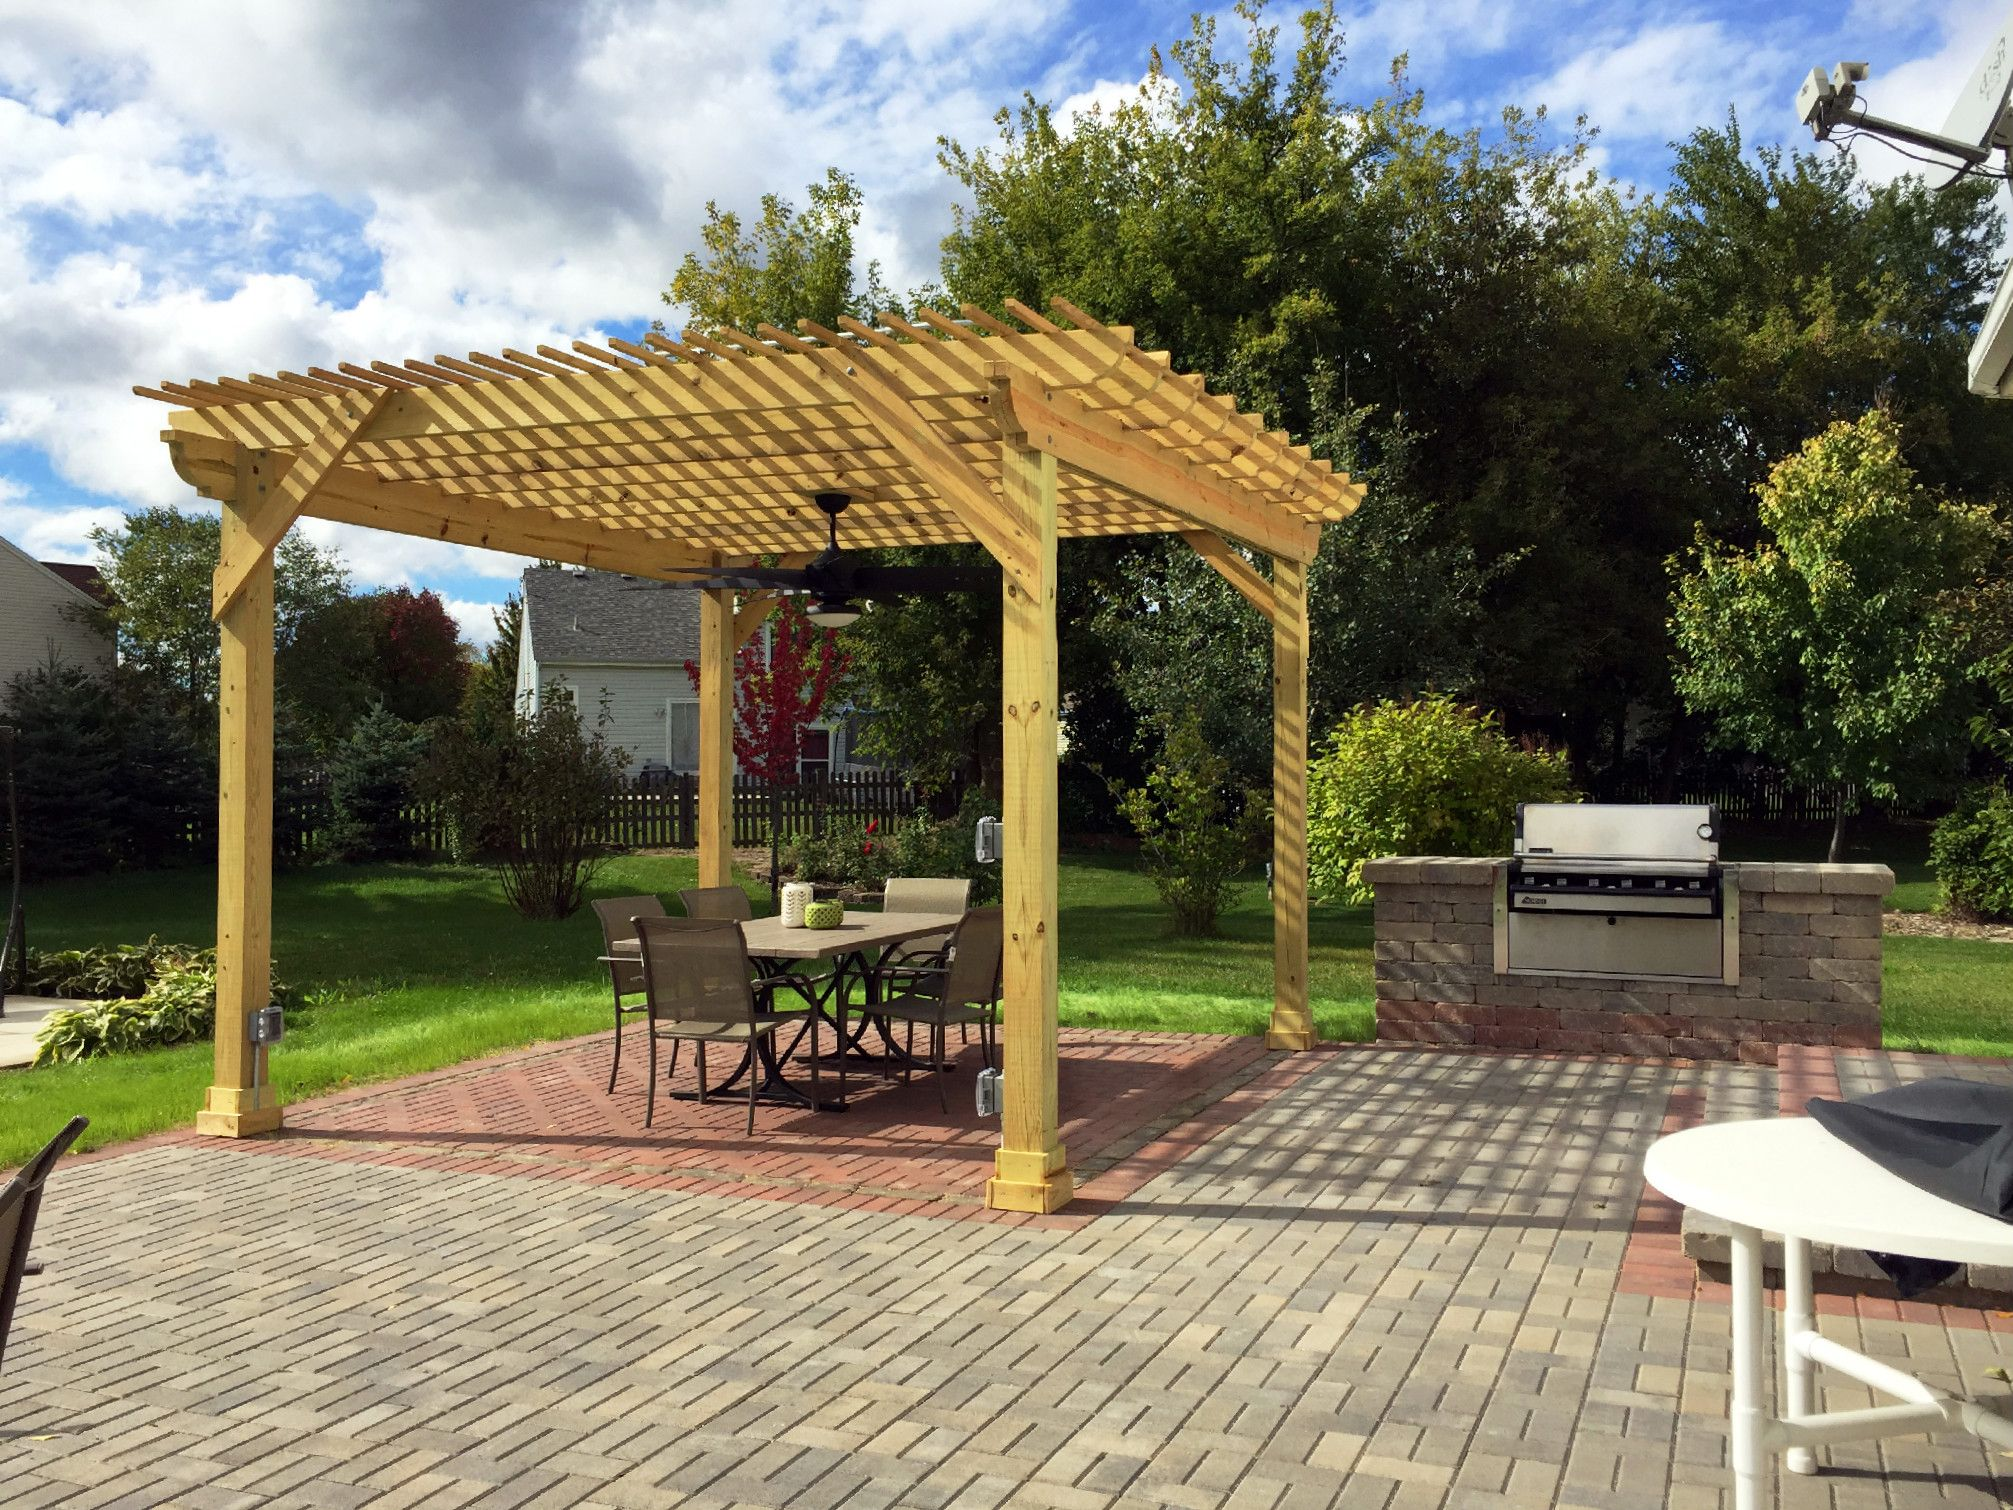 Custom Pergola Over Belgard Patio With Built In Grill Surround By Gurnee,  IL Patio